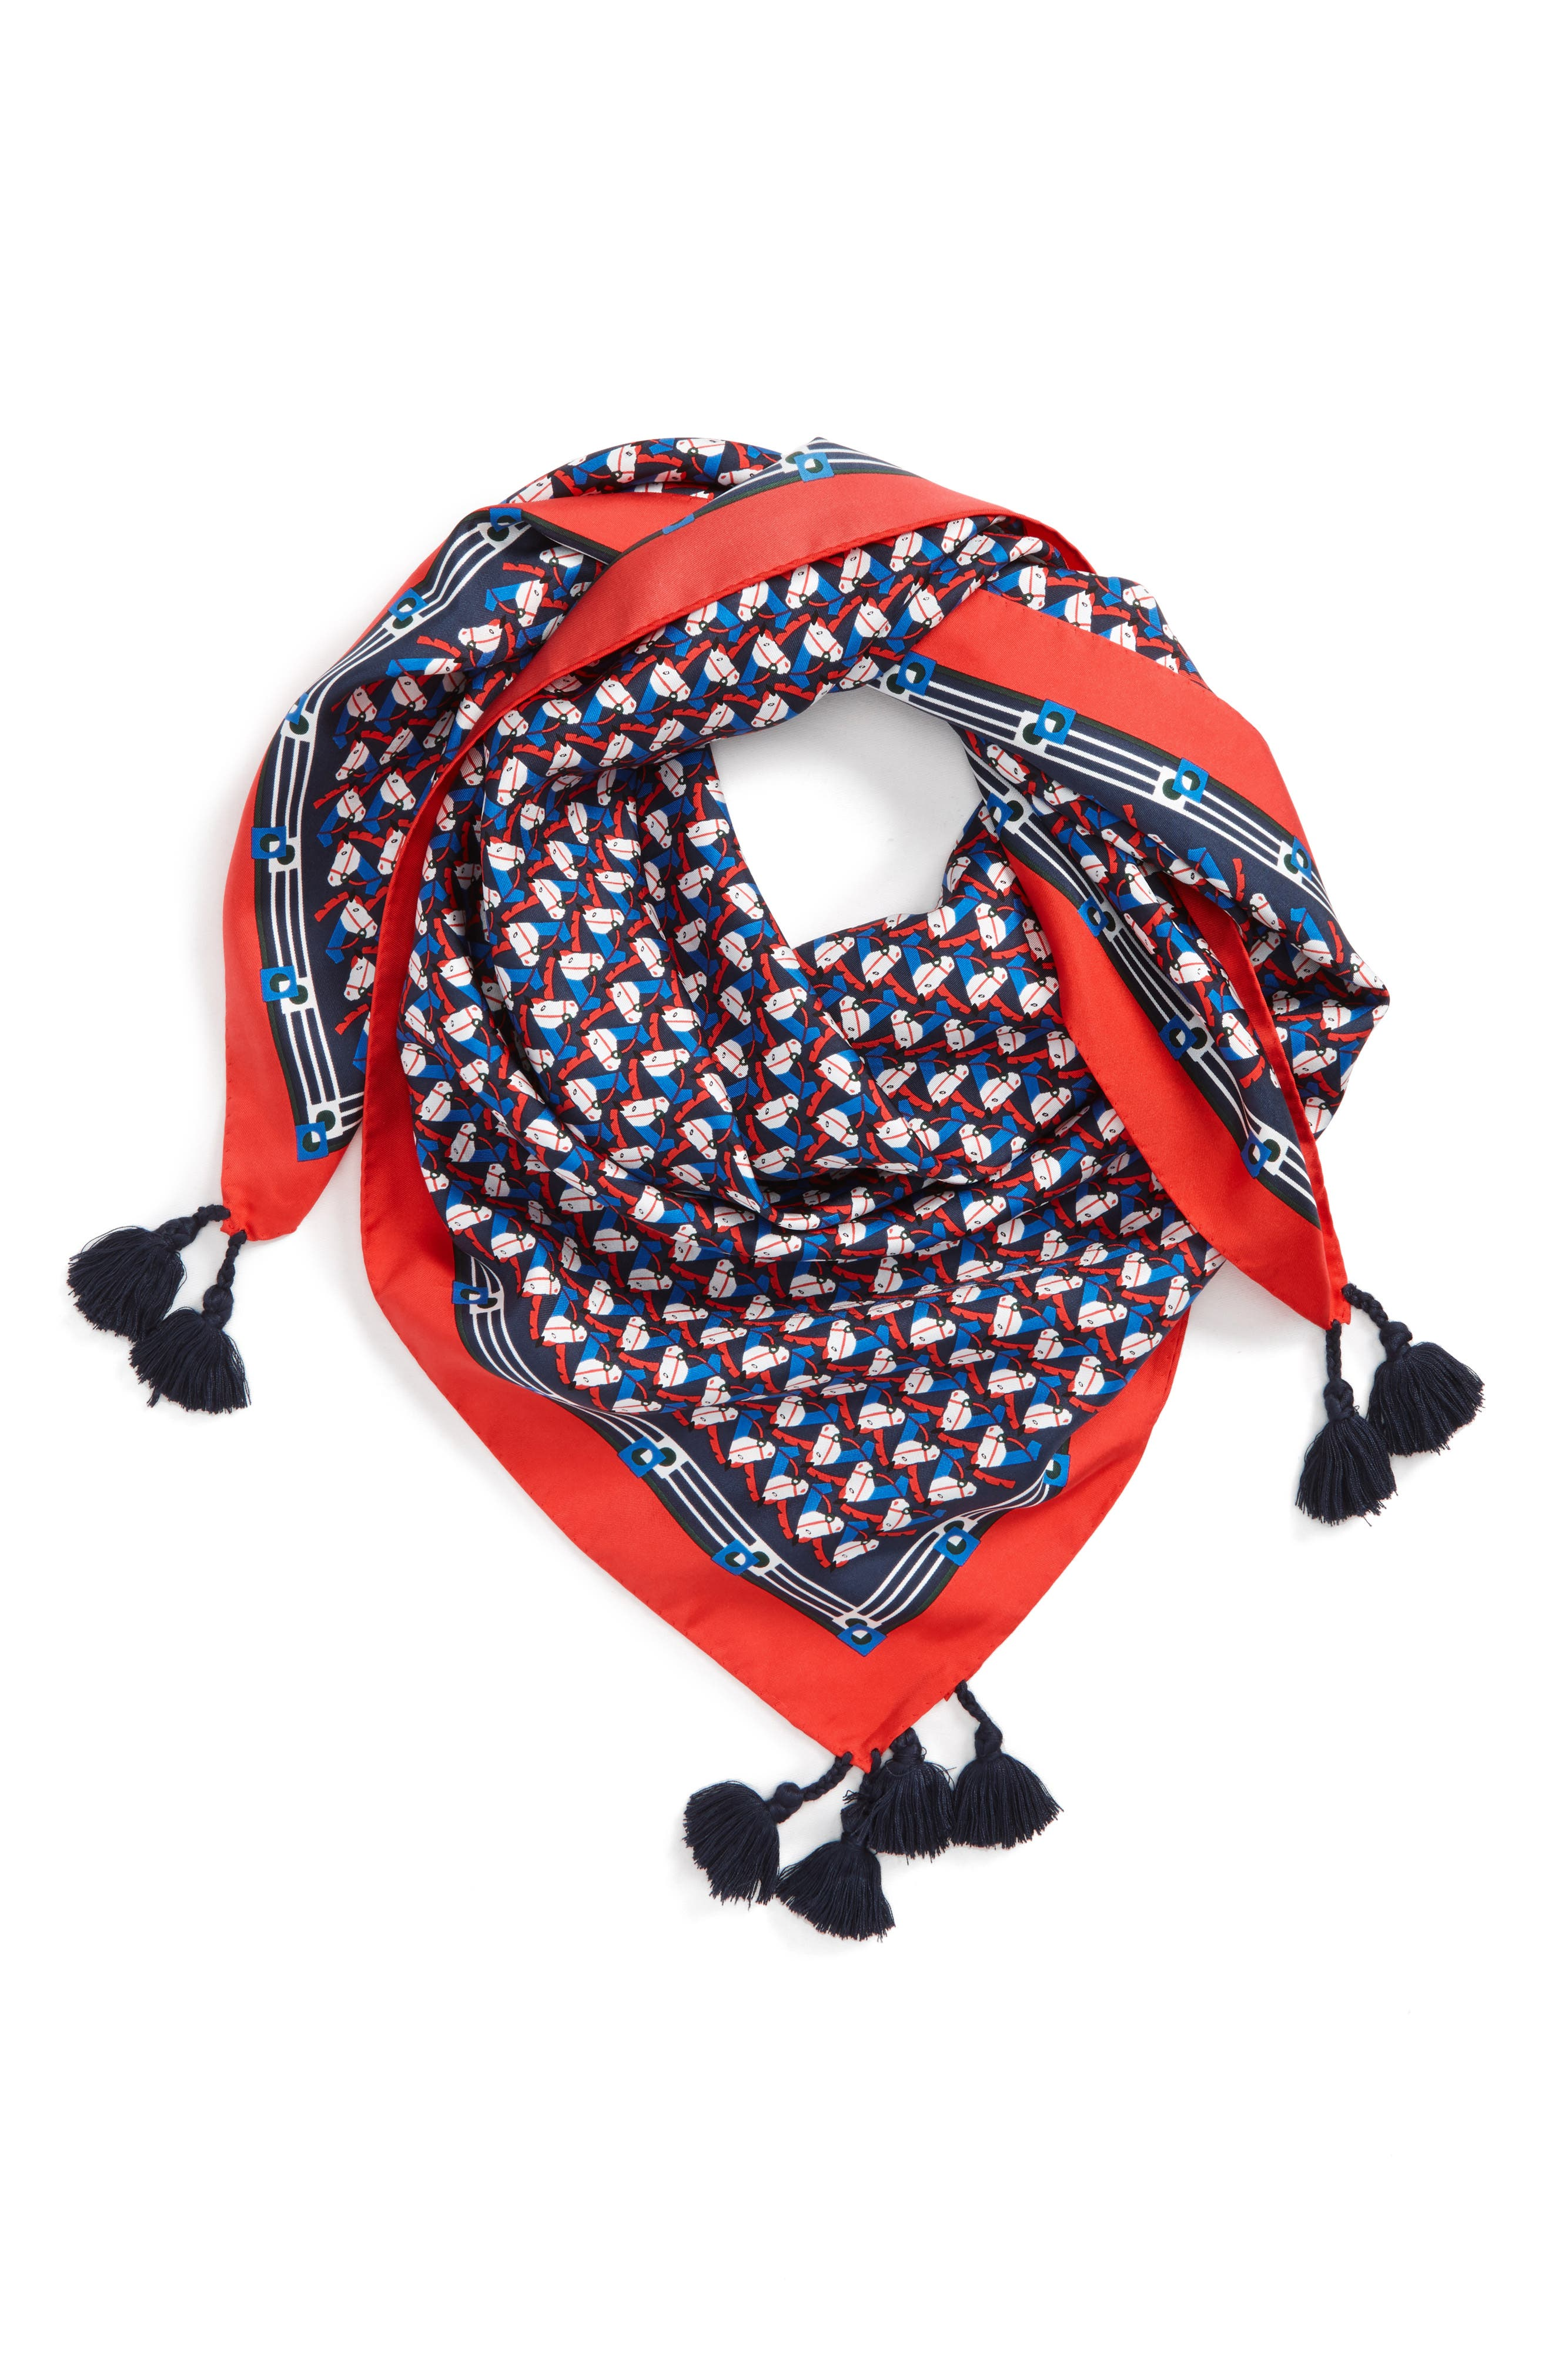 Stallion Silk Square Scarf with Tassels,                         Main,                         color,